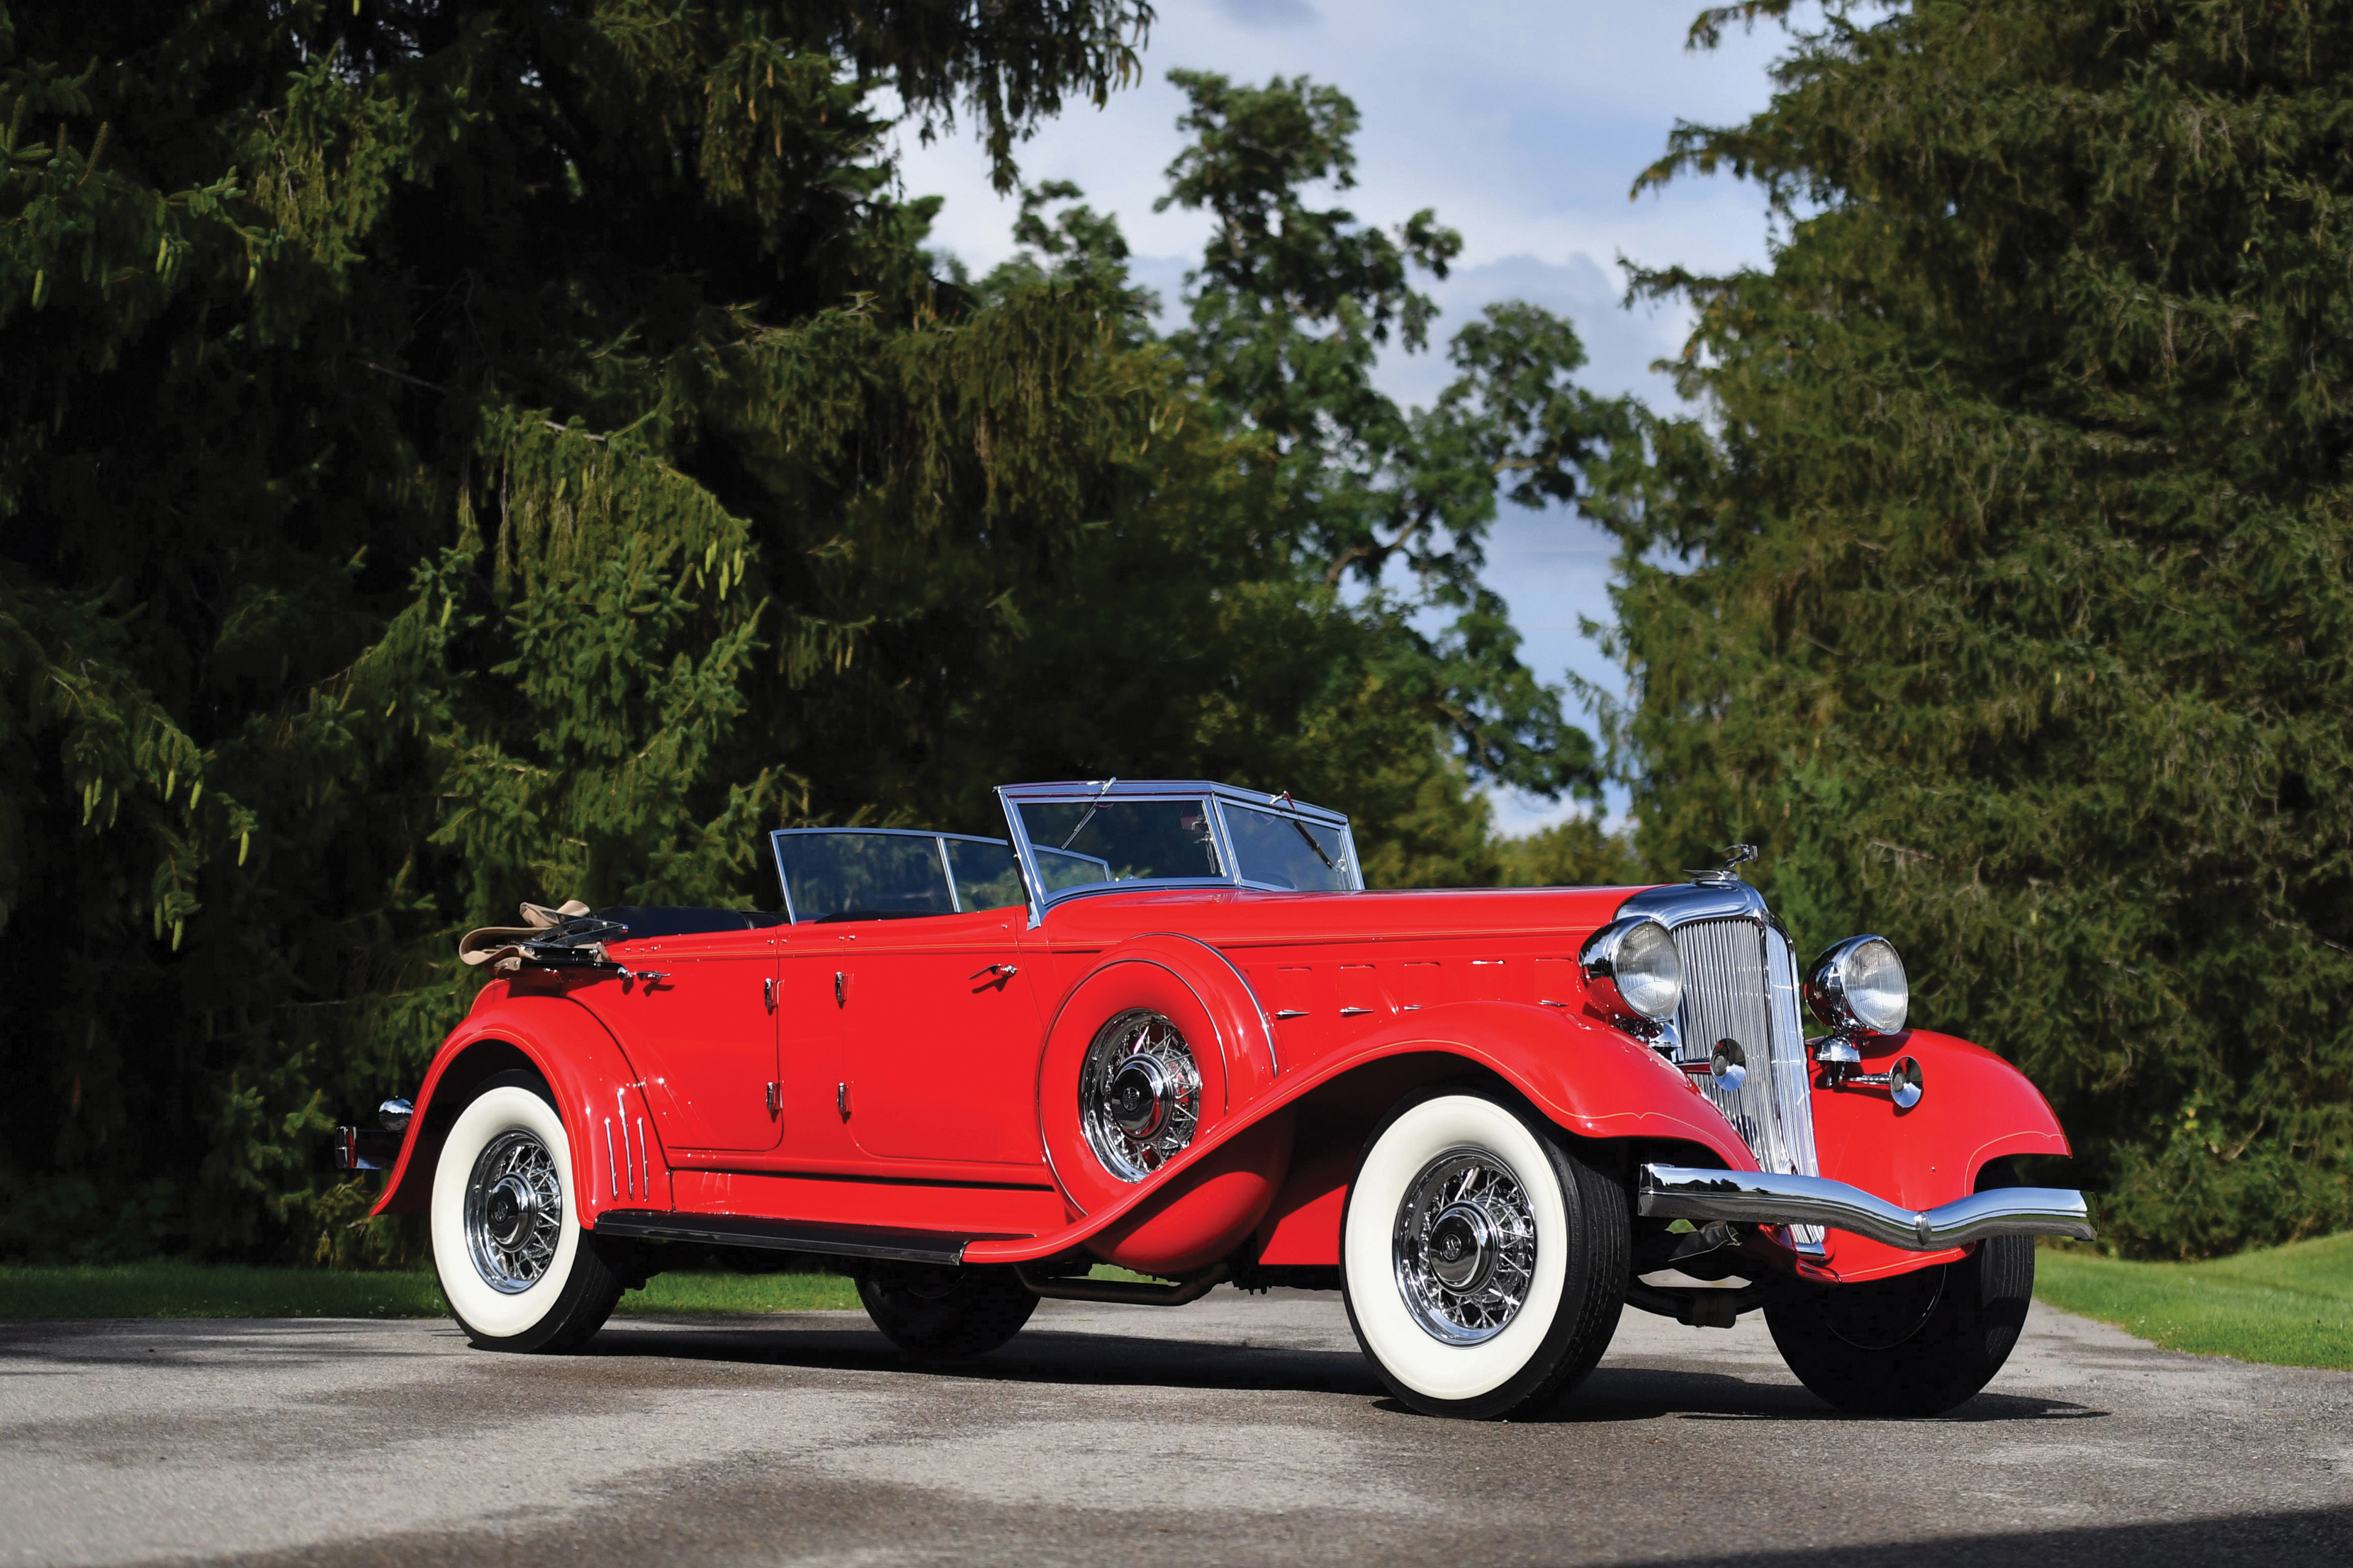 Are these the most beautiful cars of the 1930s